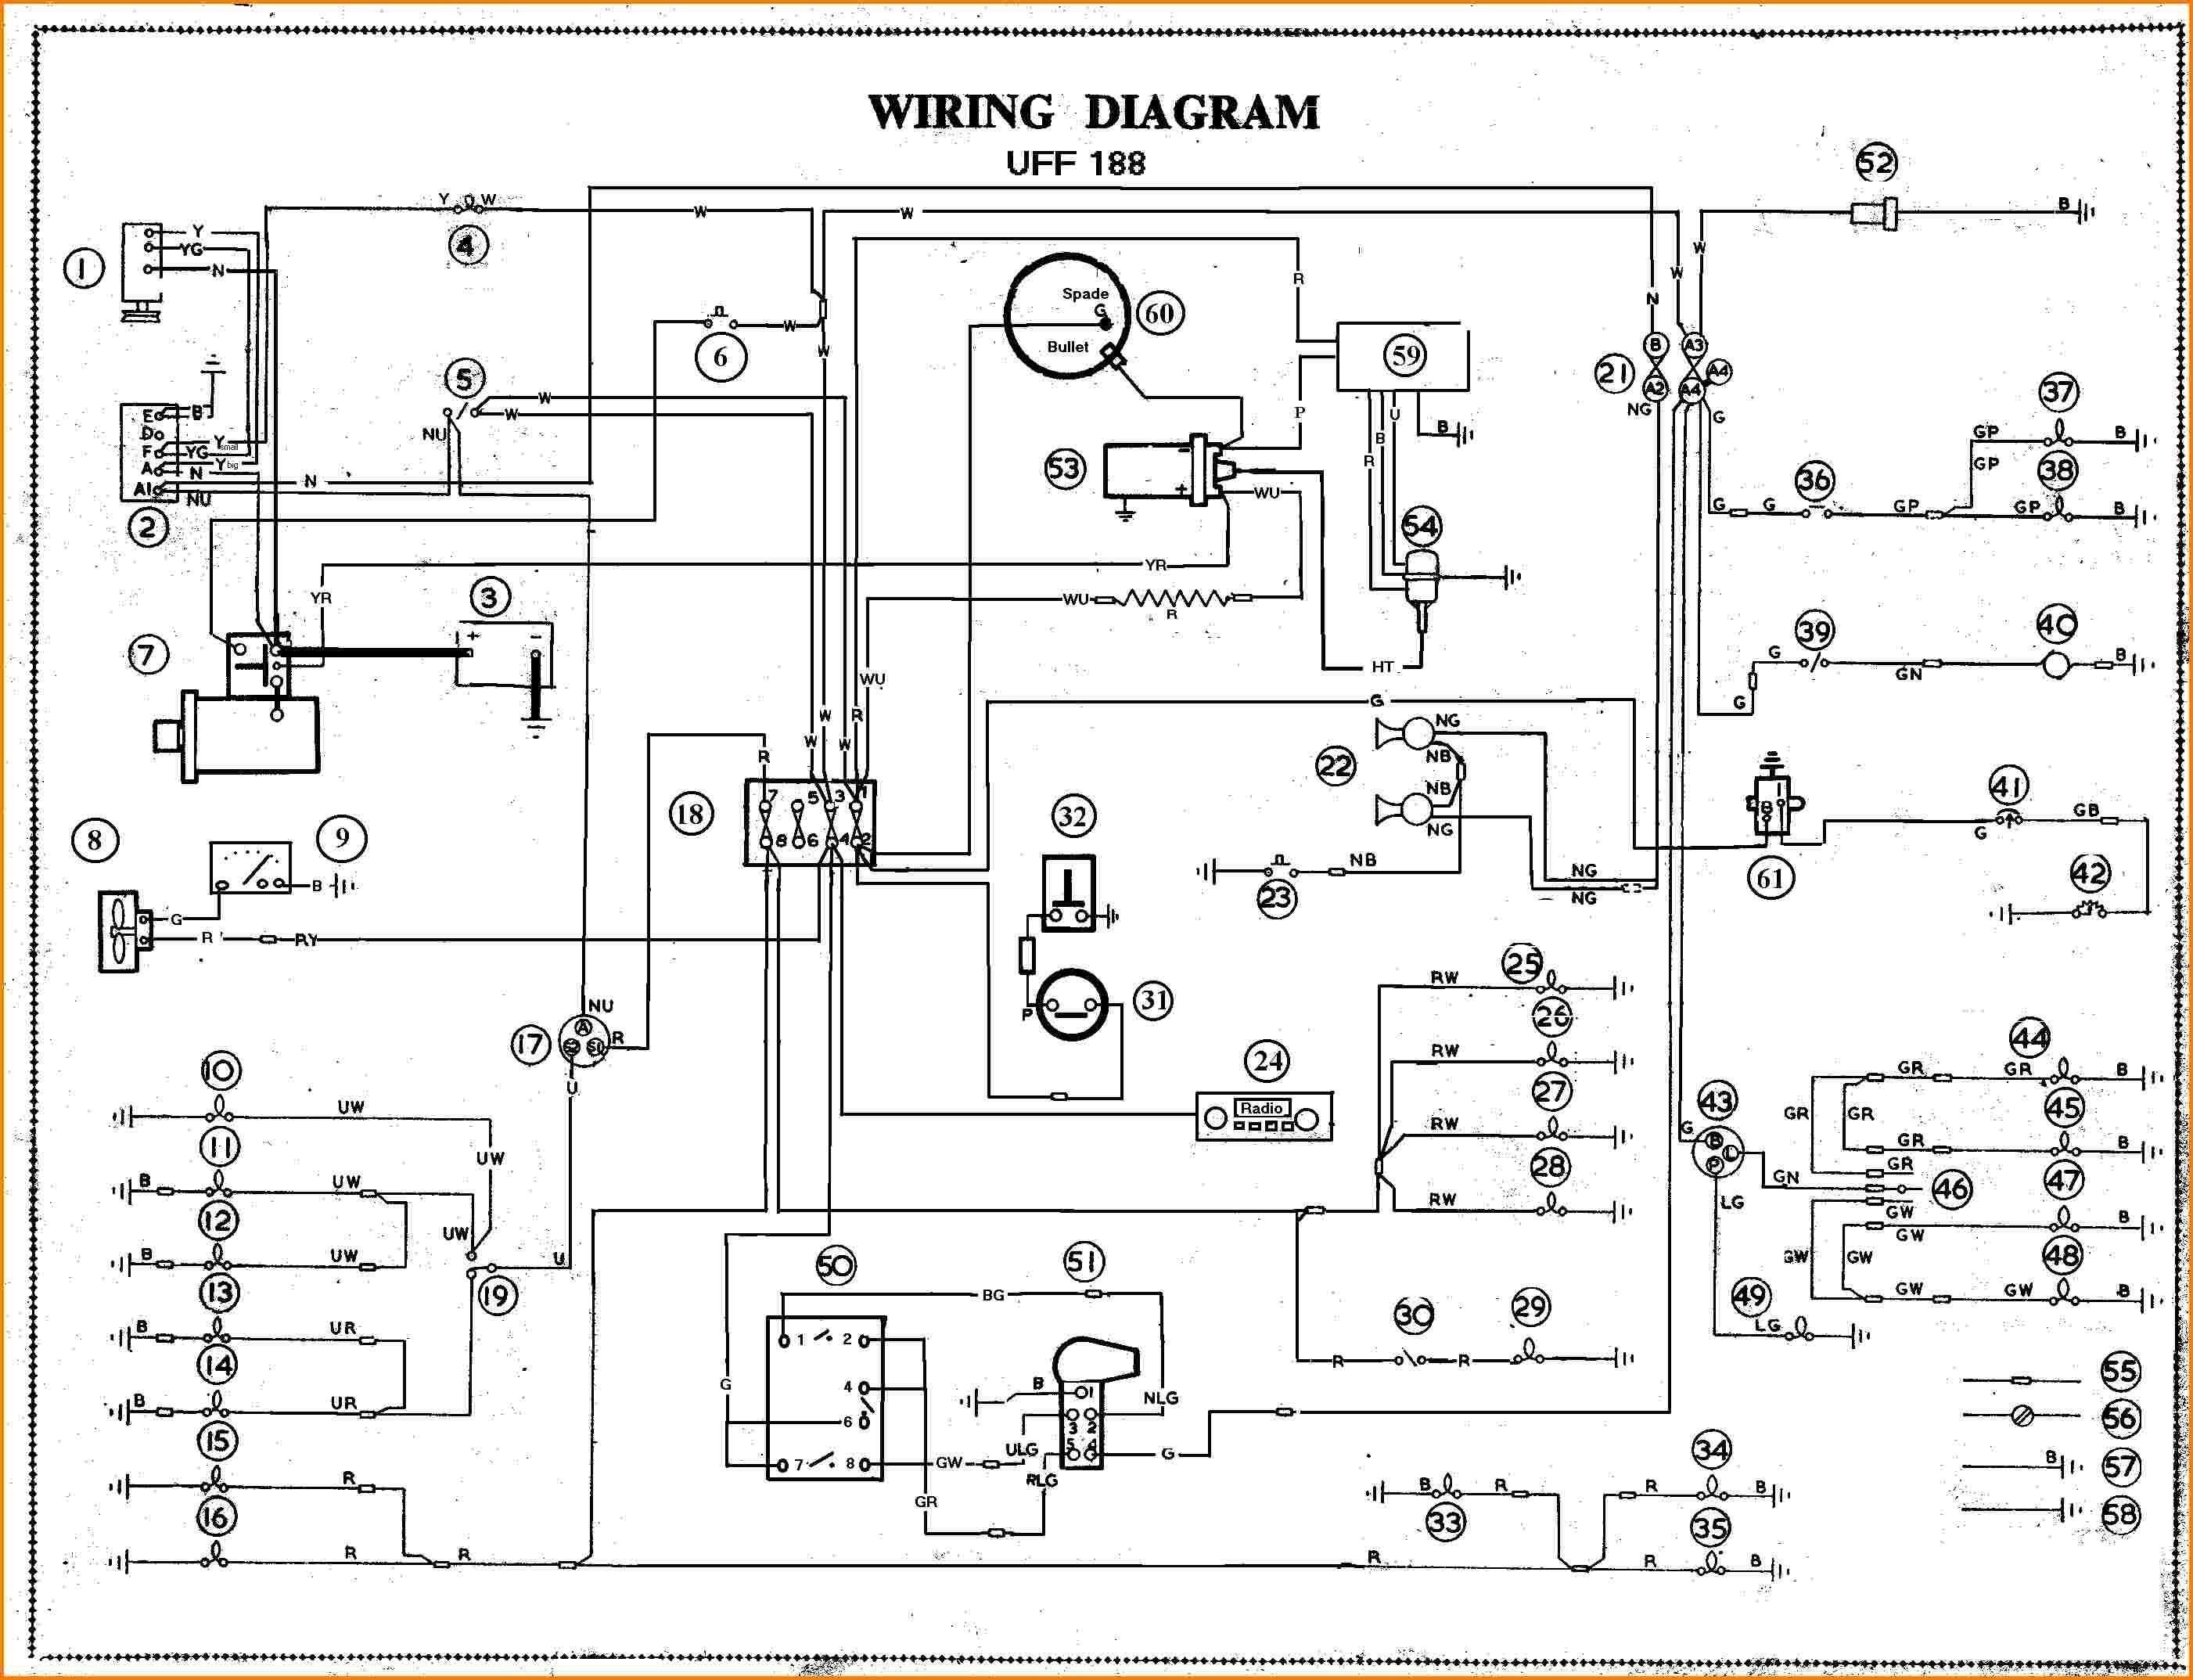 New Wiring Diagram Lincoln Town Car Electrical Wiring Diagram Electrical Diagram Diagram Design